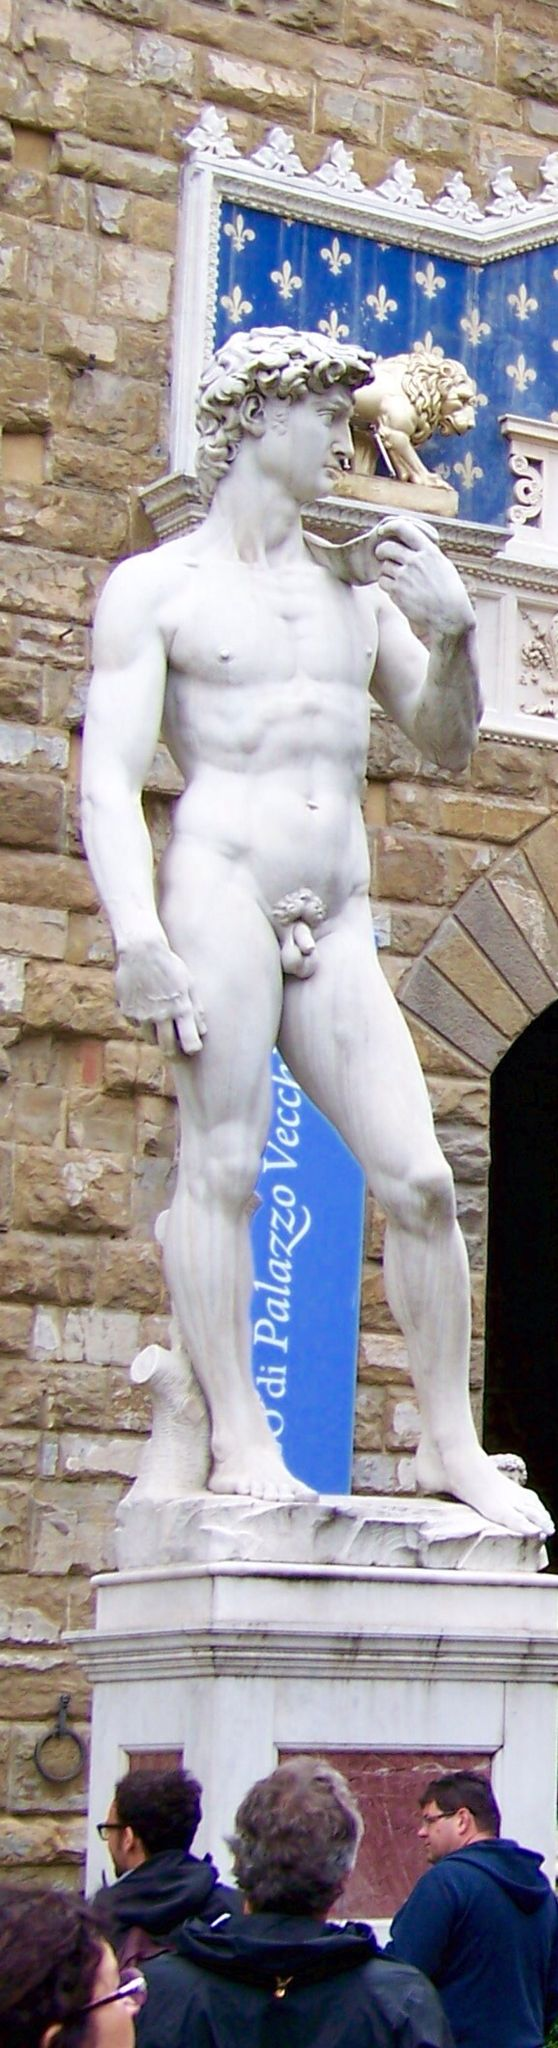 statue of Michelangelo's David (one is in the Accademia Gallery) outside the entrance to the Palazzo Vecchio, Florence Italy